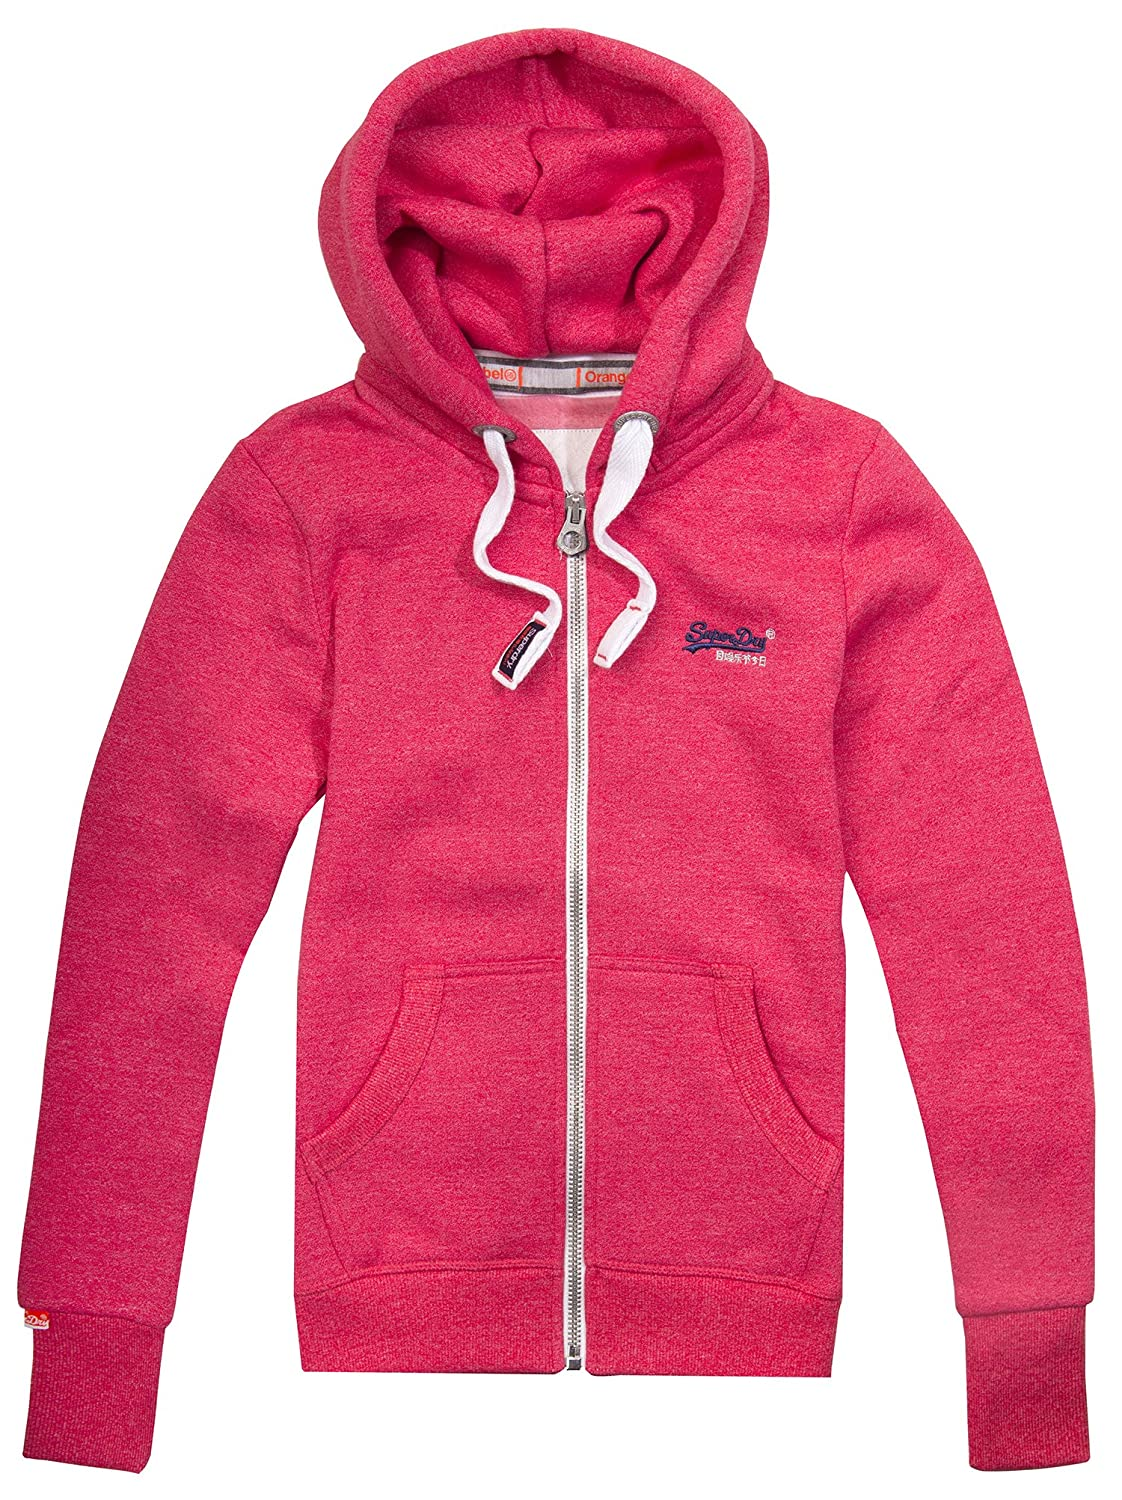 Superdry Orange Label Primary Zip Hoody, Wild Cherry Jaspe